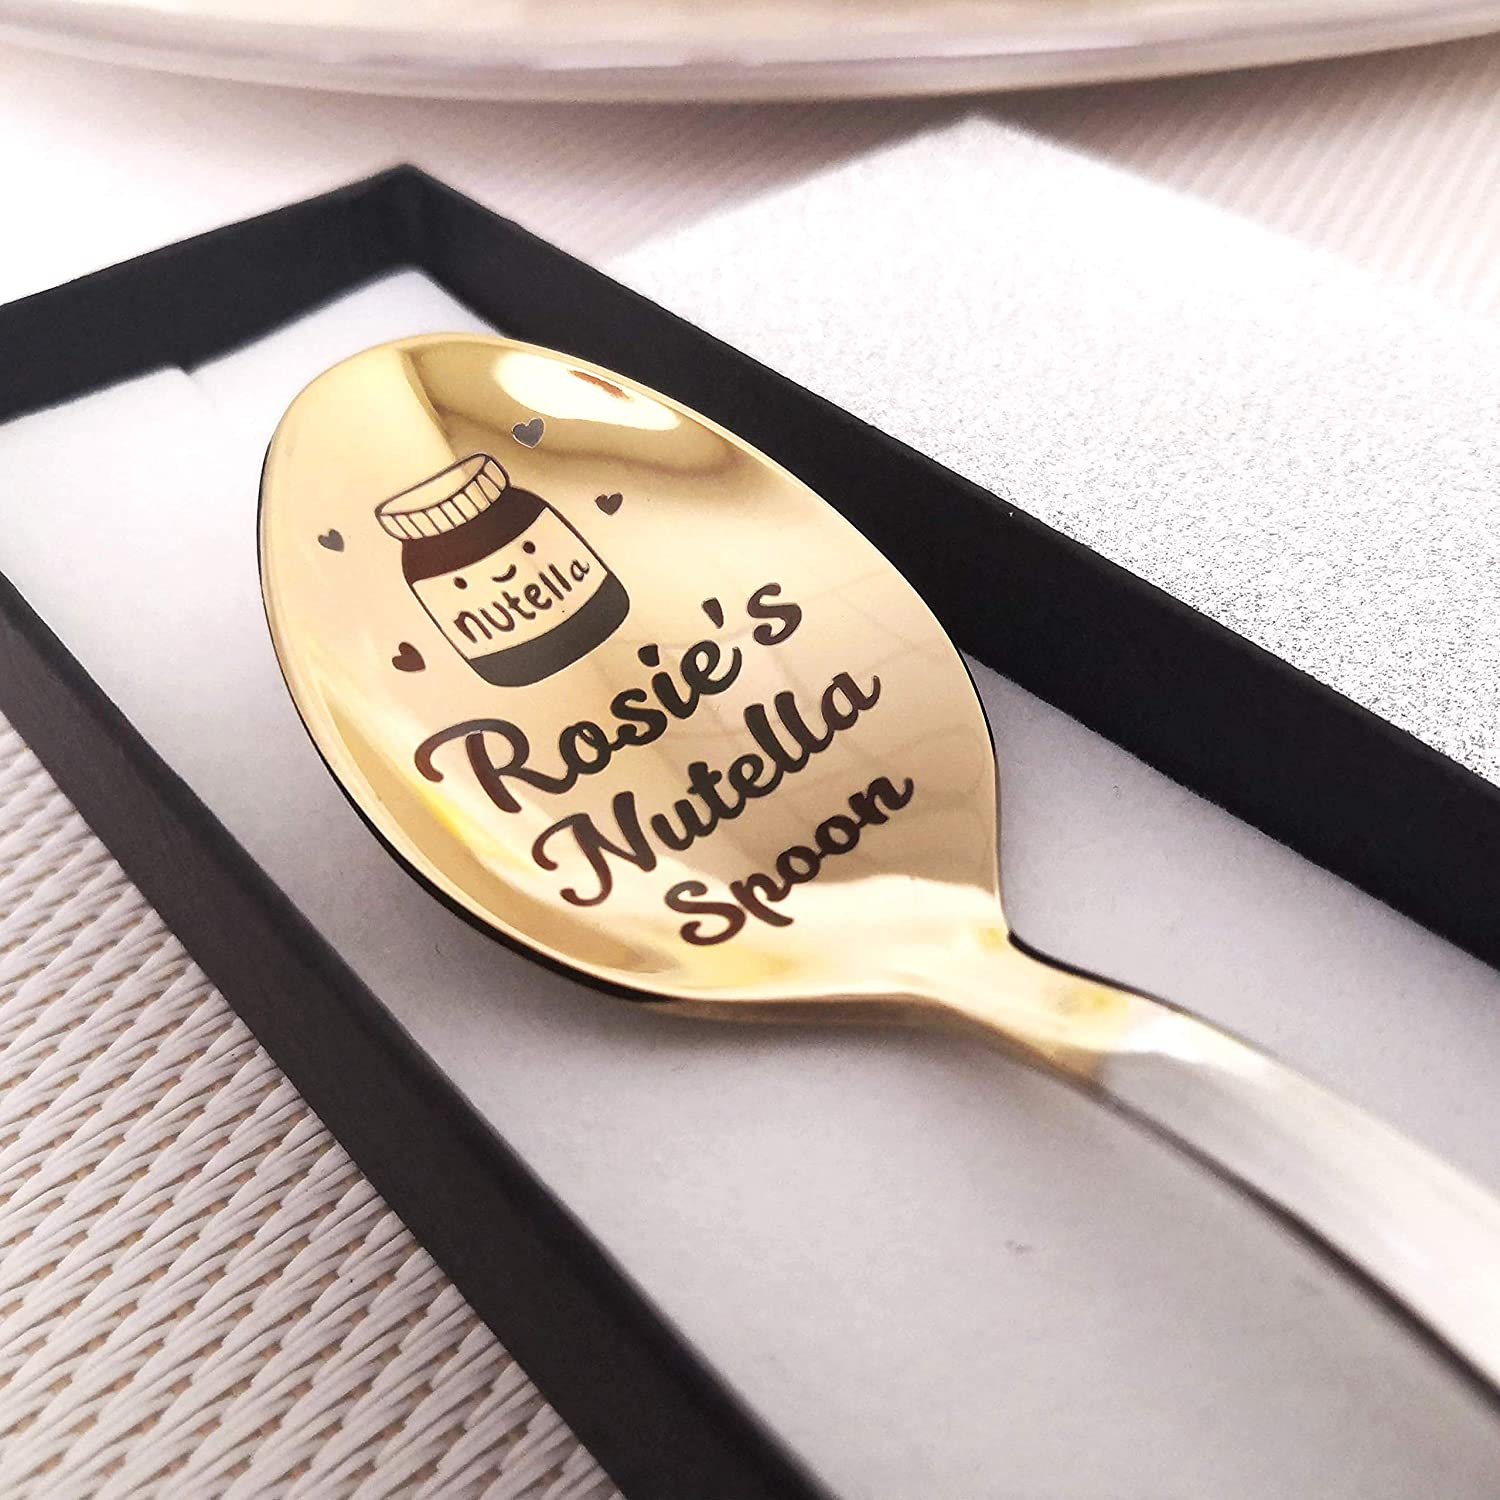 Engraved Spoon Light Engraving with Black Text Nutella Spoon Personalized Girlfriend Gift Hazelnut Cream Spoon